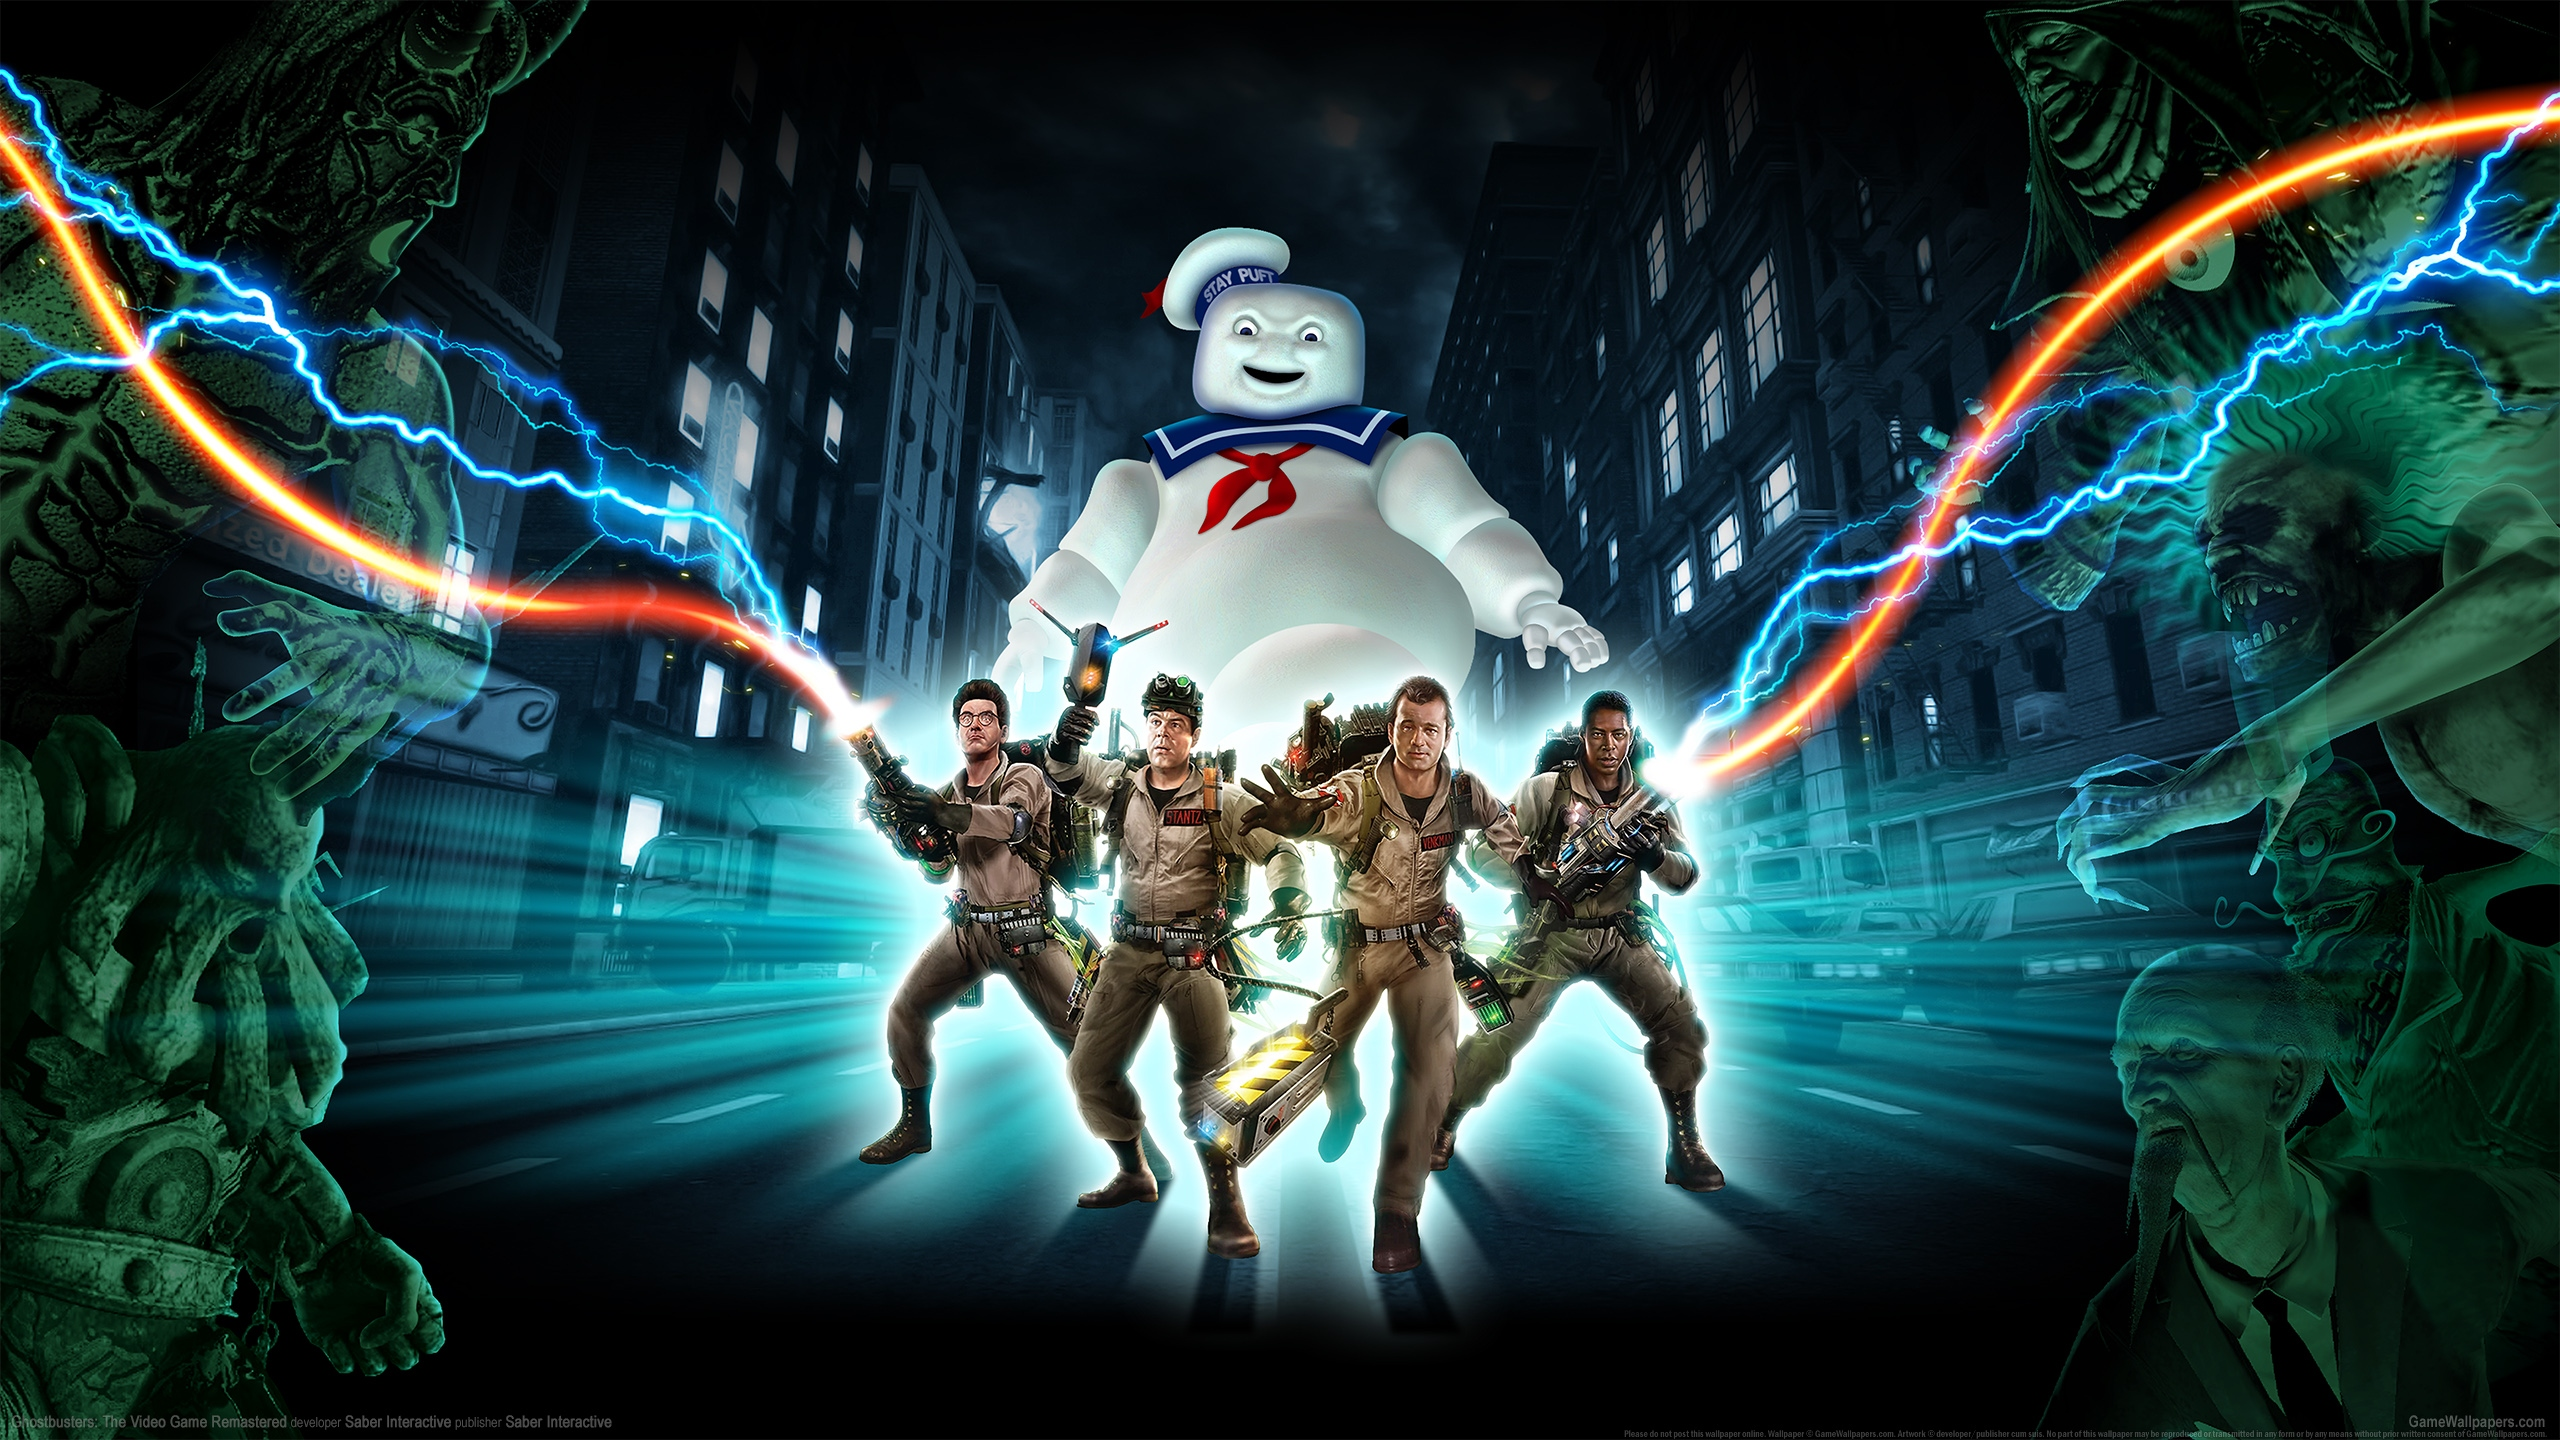 Ghostbusters: The Video Game Remastered 2560x1440 fond d'écran 01